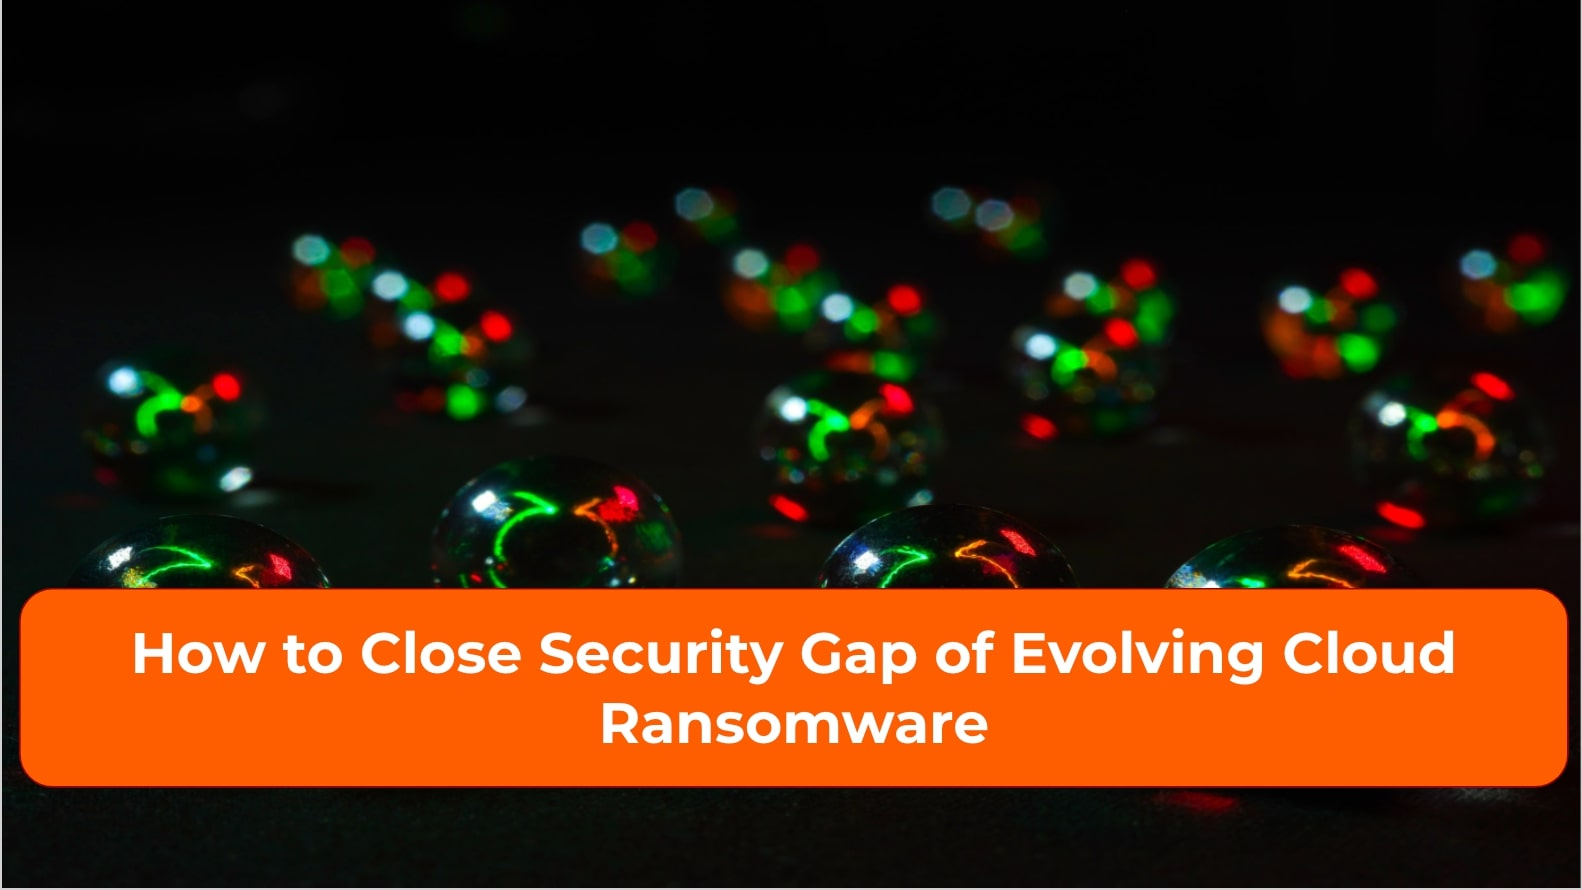 How to Close Security Gap of Evolving Cloud Ransomware